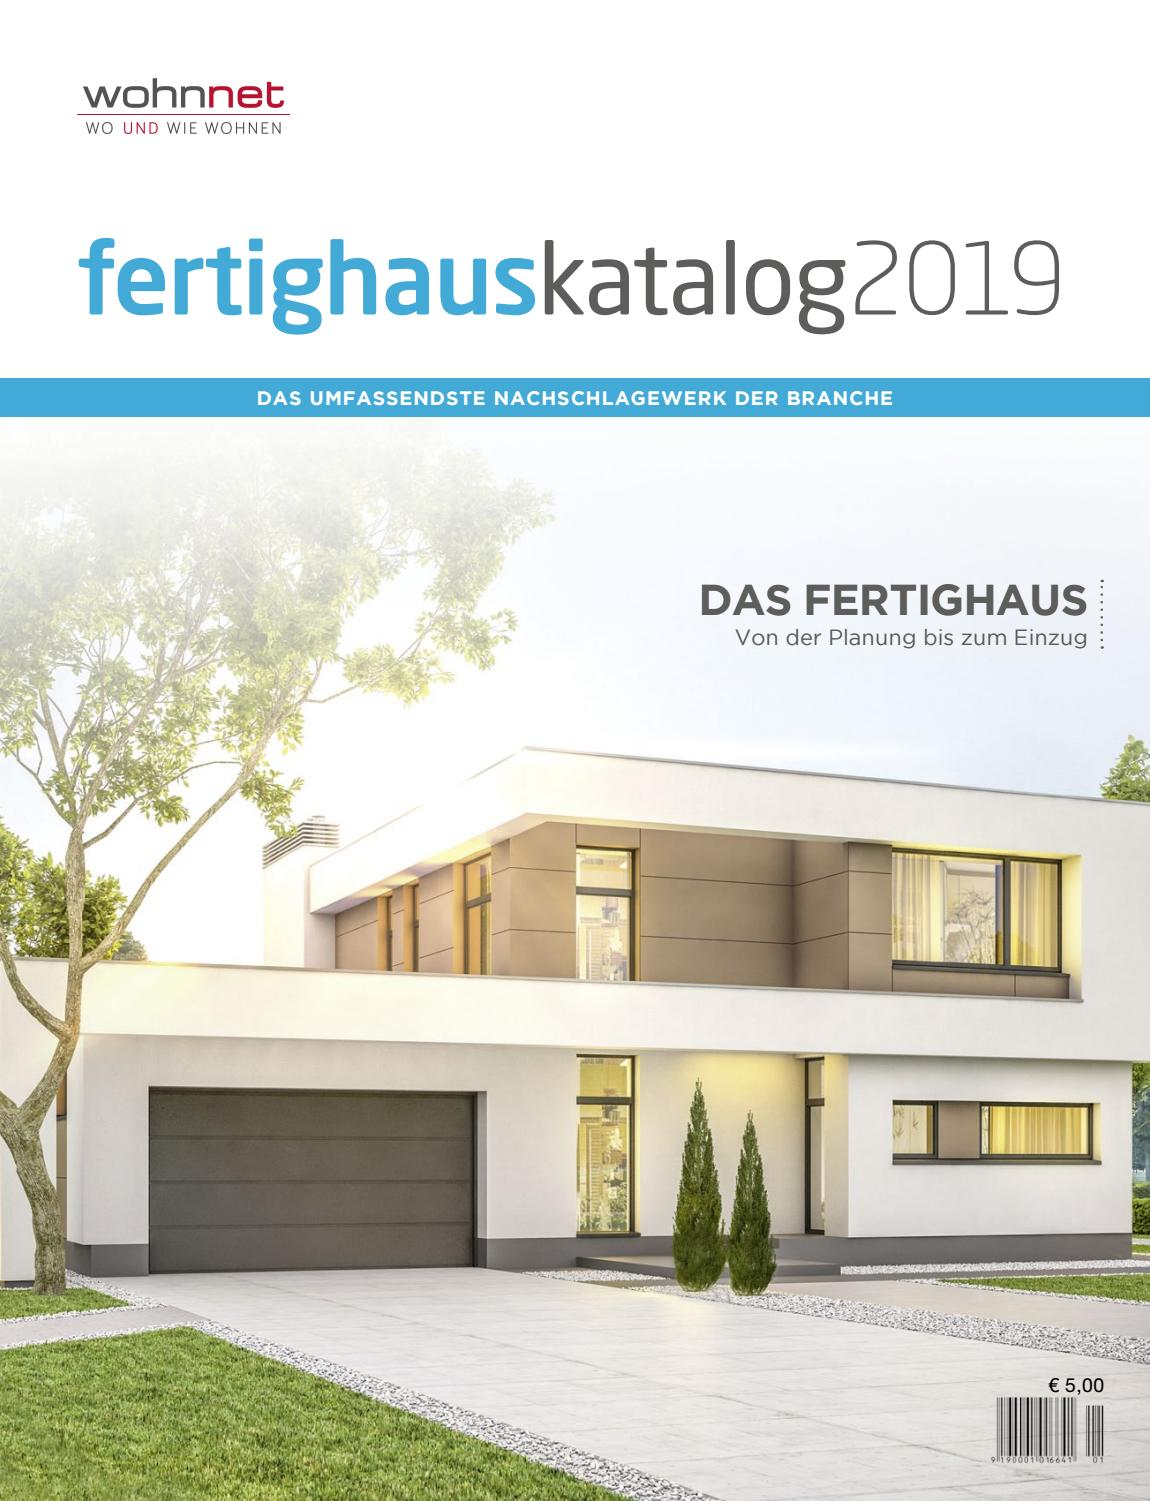 Fertighaus Usa Fertighauskatalog 2019 By Wohnnet Issuu